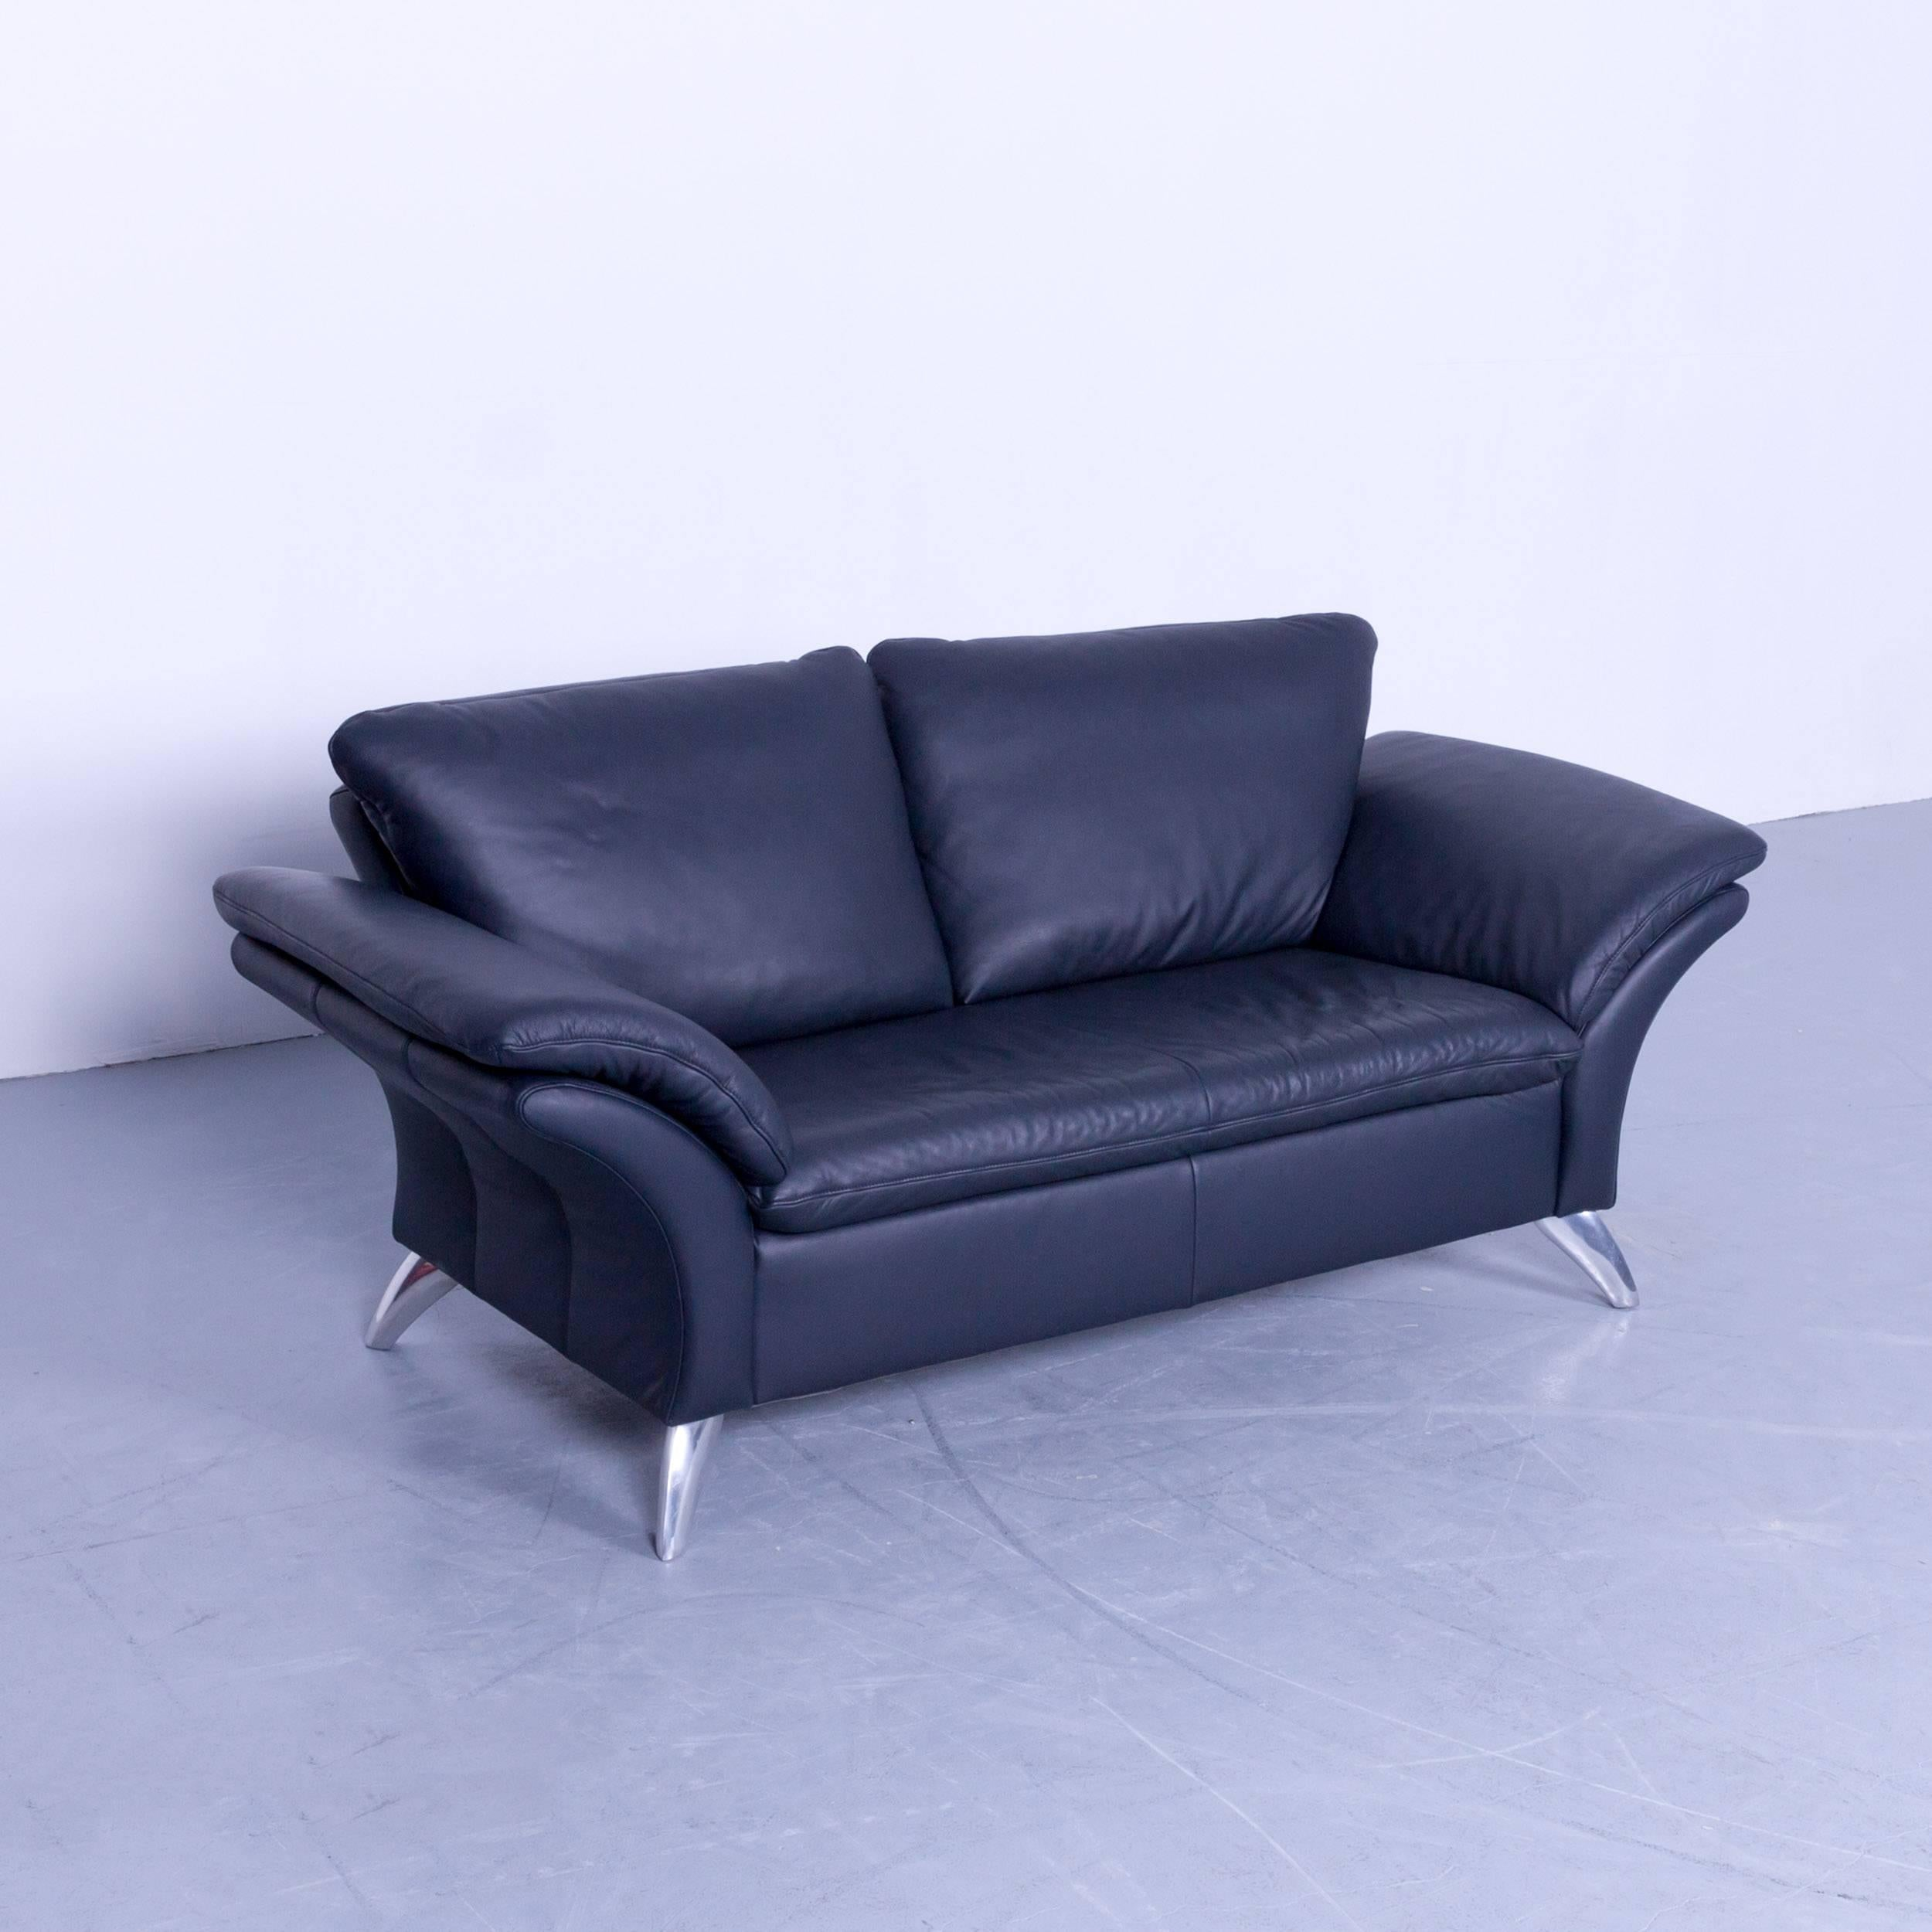 Laauser Polstermbel Excellent Lederfarbe Fr Sofa With Laauser